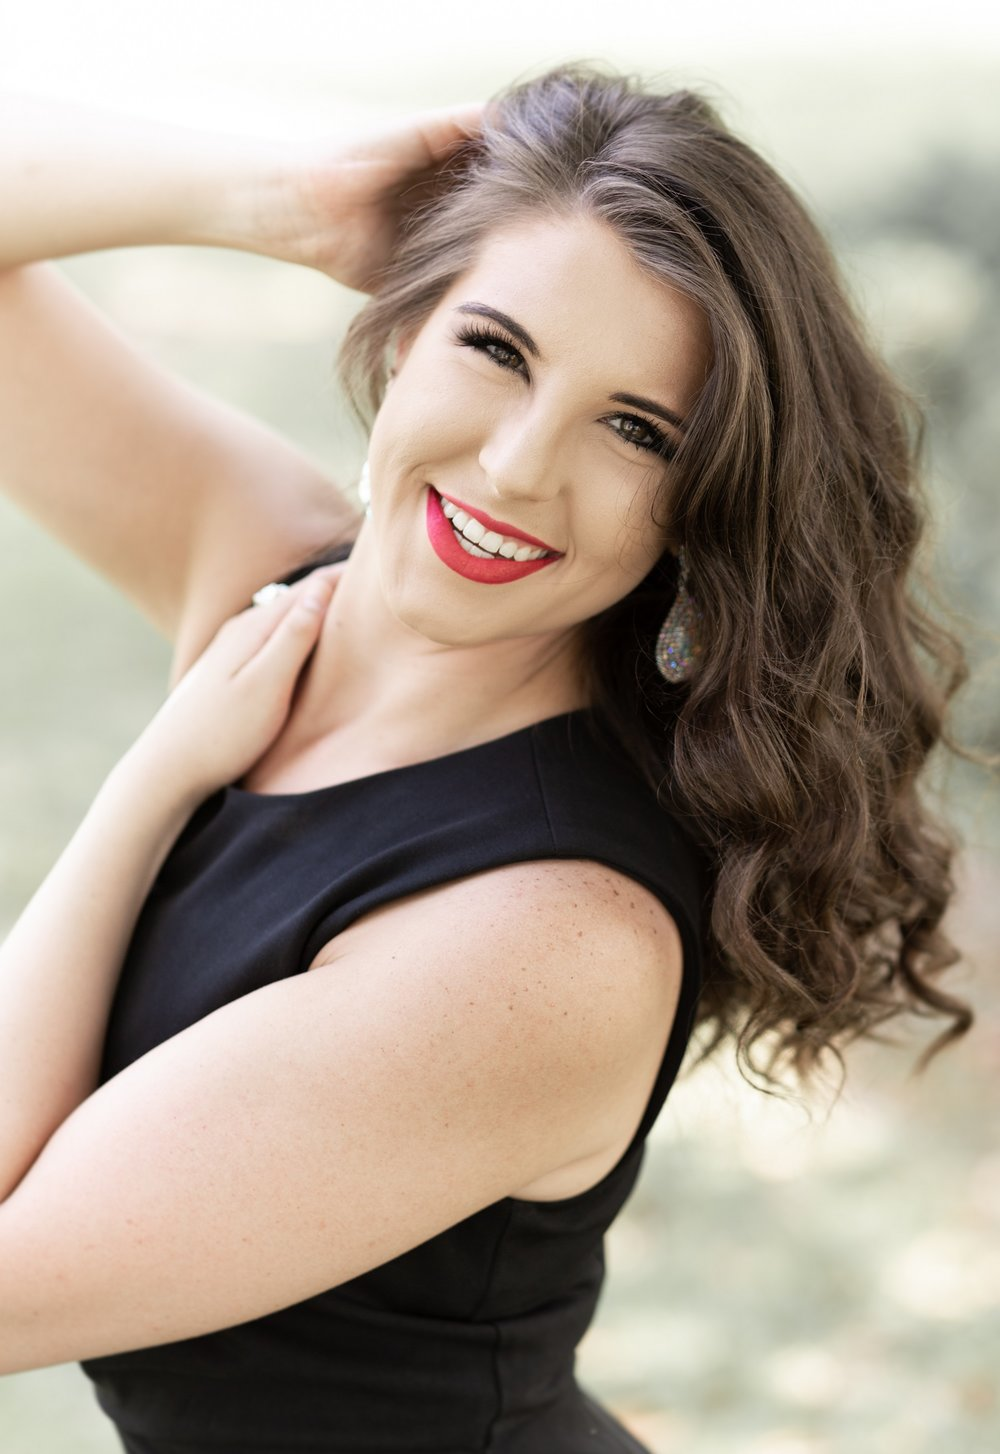 Erin Perry Cap & Gown Session-45.jpg